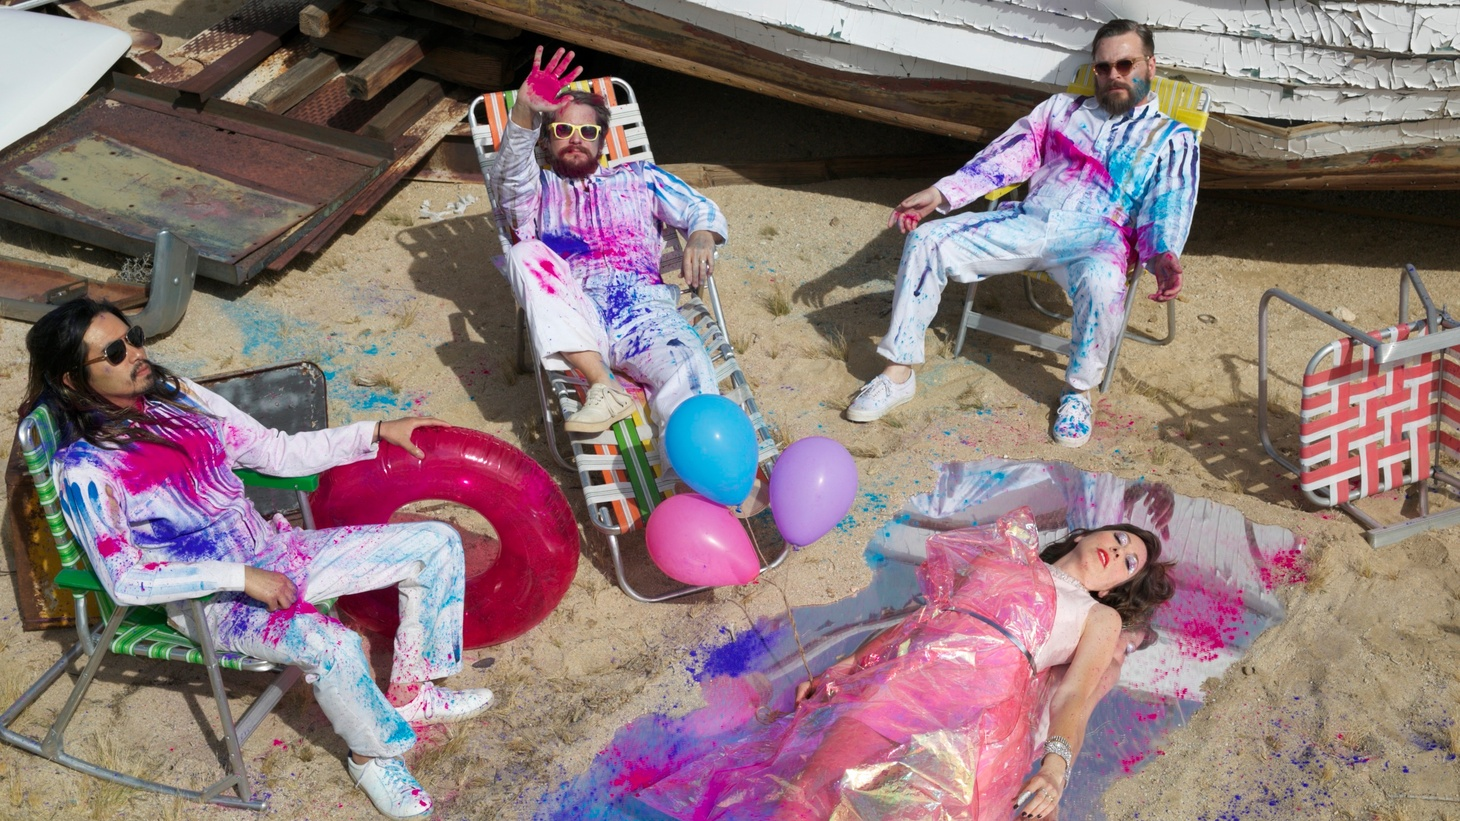 Born in the woods of Topanga, Silversun Pickups will reveal their fourth studio album, on their own label late September.